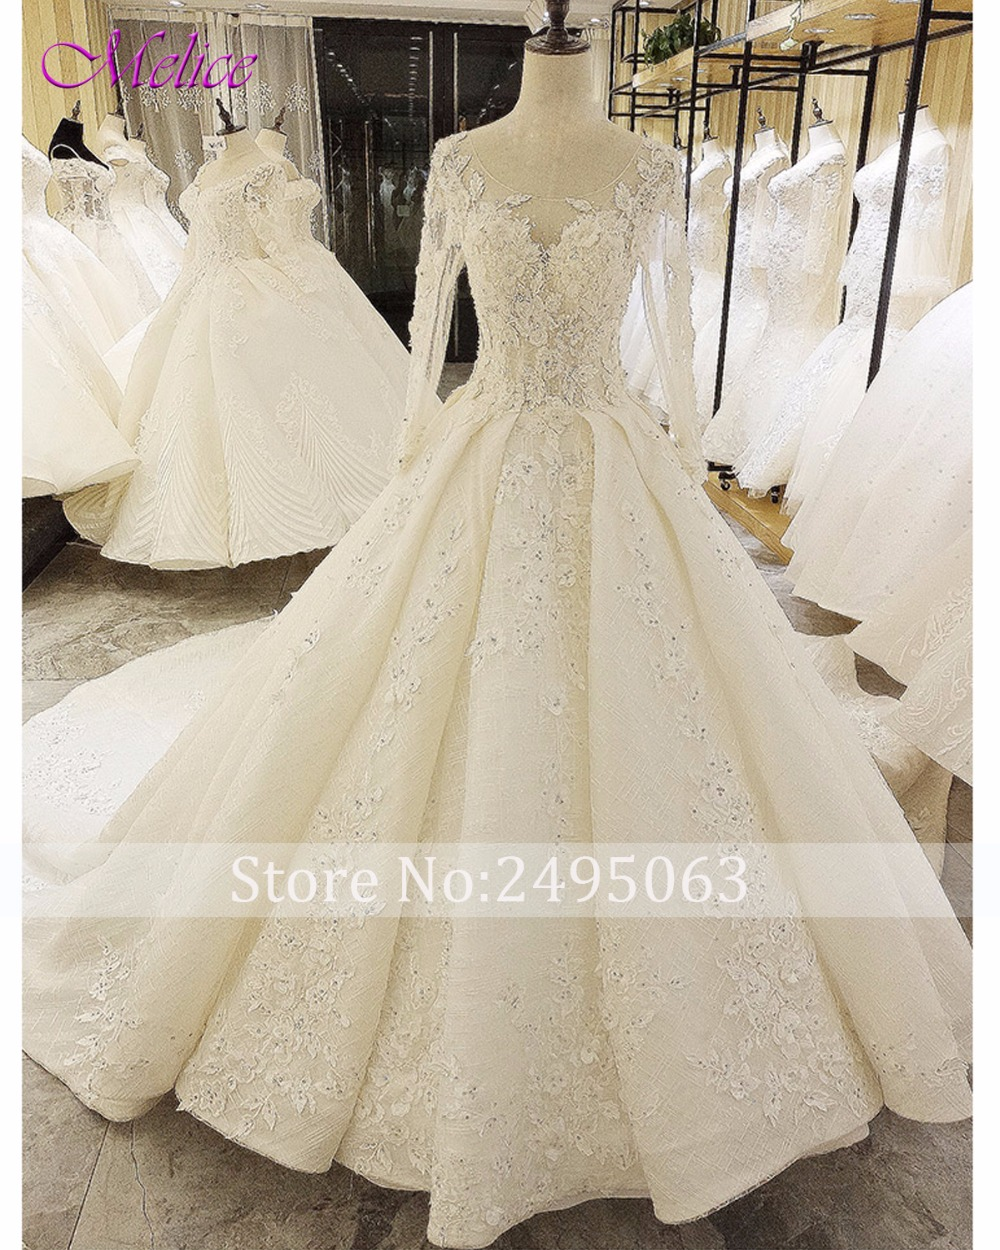 8bbb4b04f2121 US $483.79 18% OFF|Fmogl Glamorous Appliques Royal Train Lace A Line  Wedding Dresses 2019 Long Sleeve Beaded Pearls Bridal Dress Vestido de  Noiva-in ...